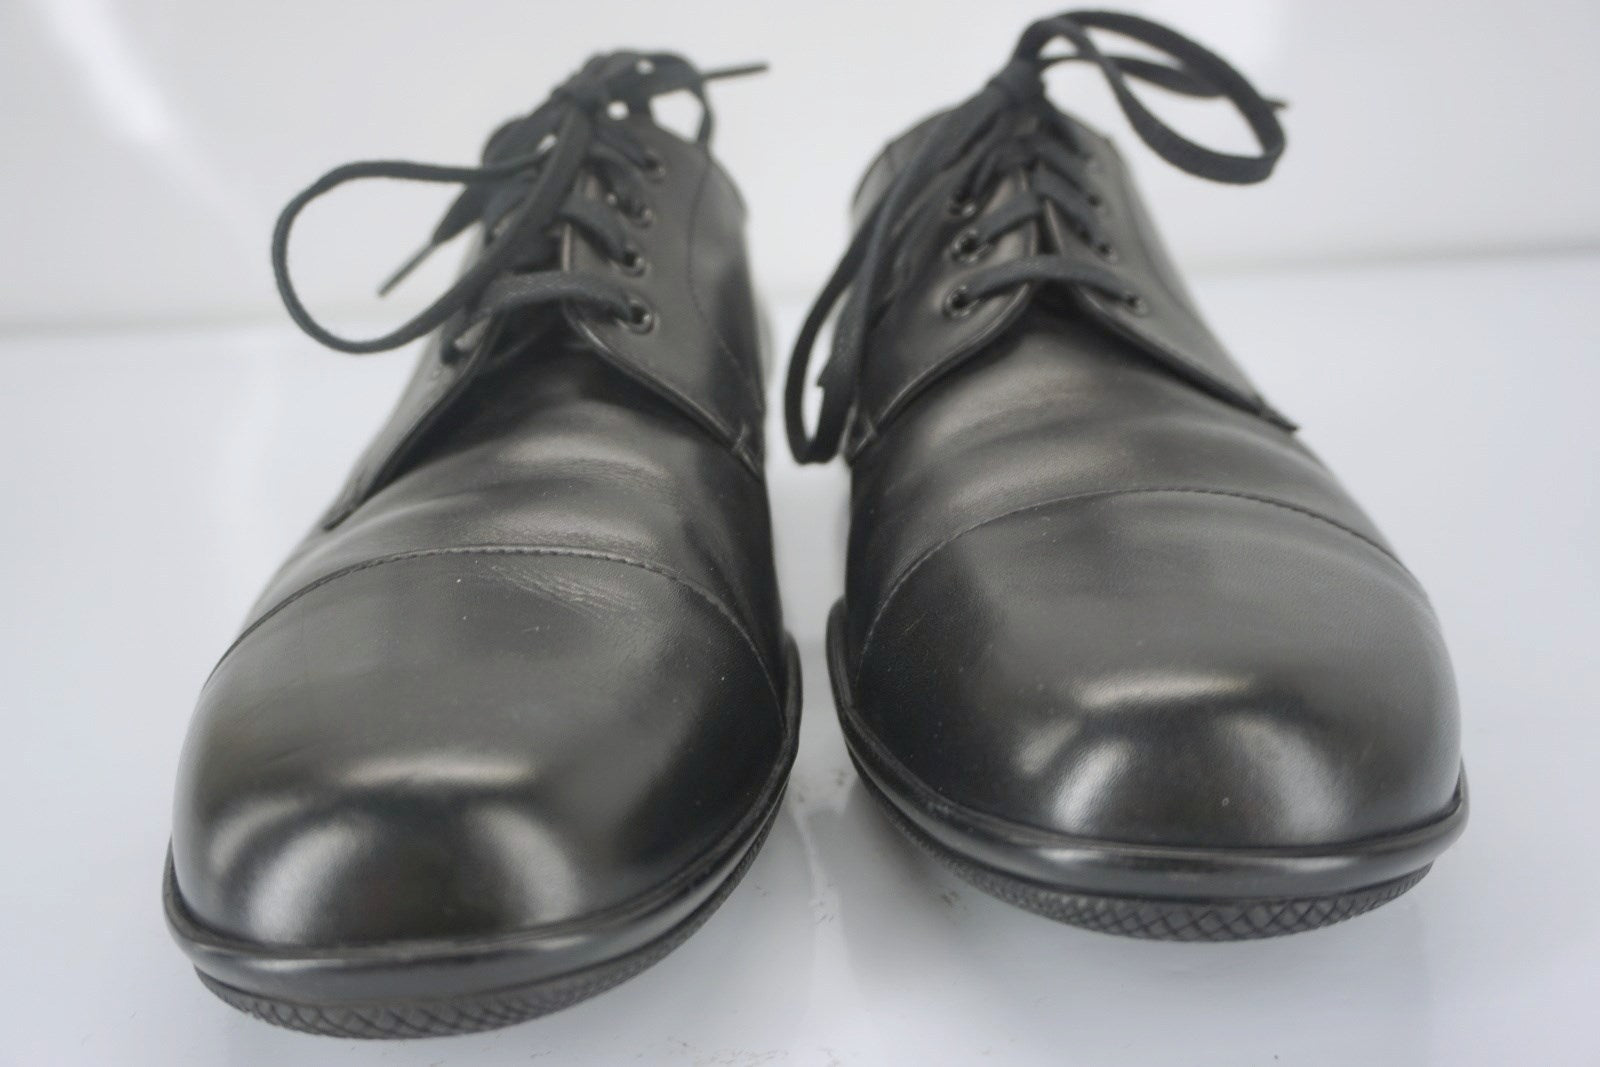 Prada Sport Black Leather Toblac Cap Toe Oxford Dress Shoes SZ 9E Wide New $670